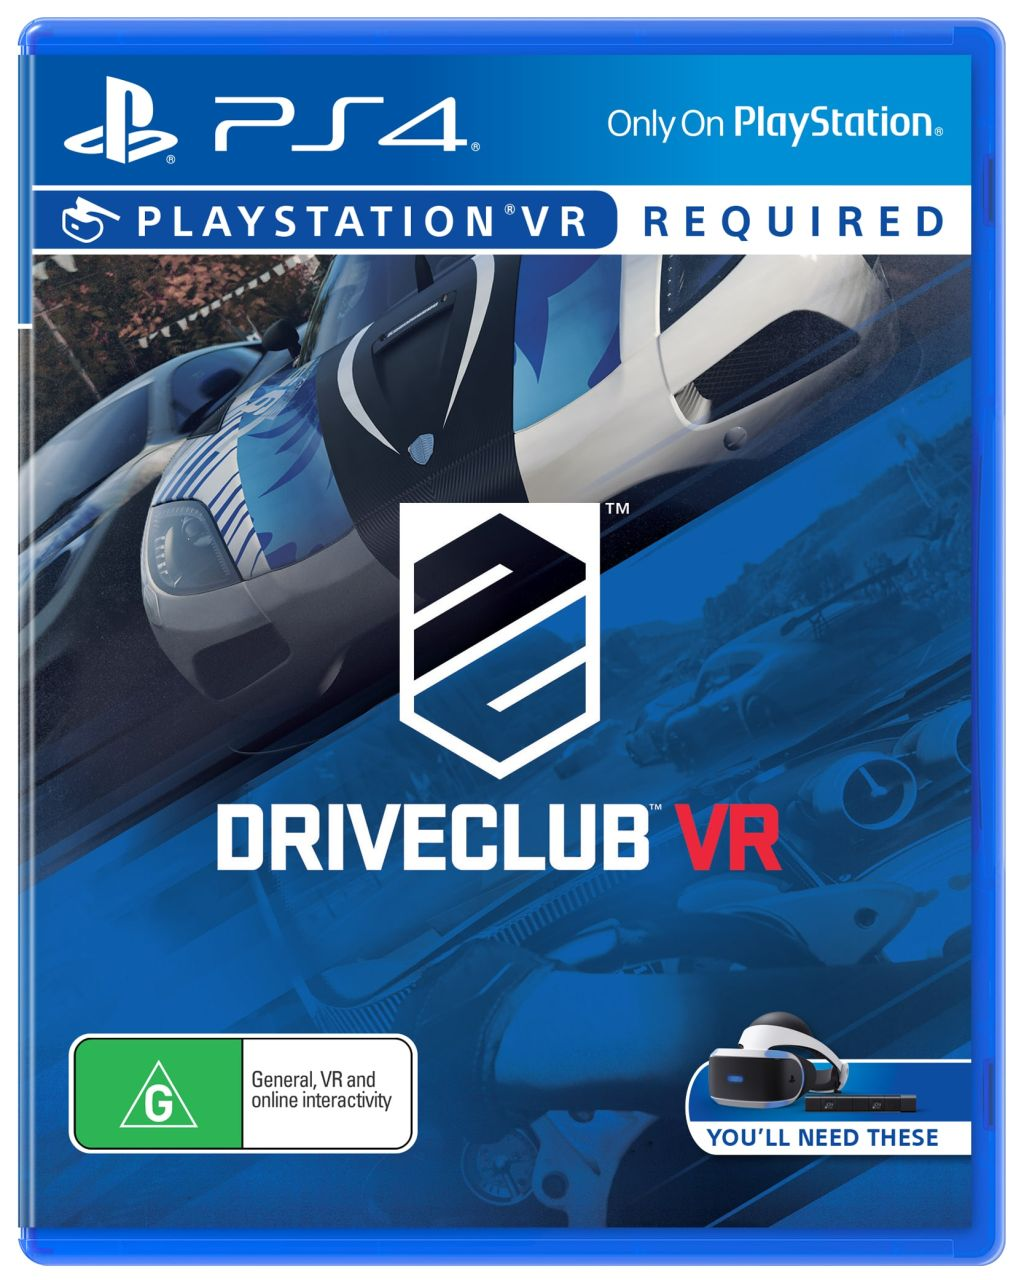 sony-ps4-playstation-vr-driveclub-game-9852759